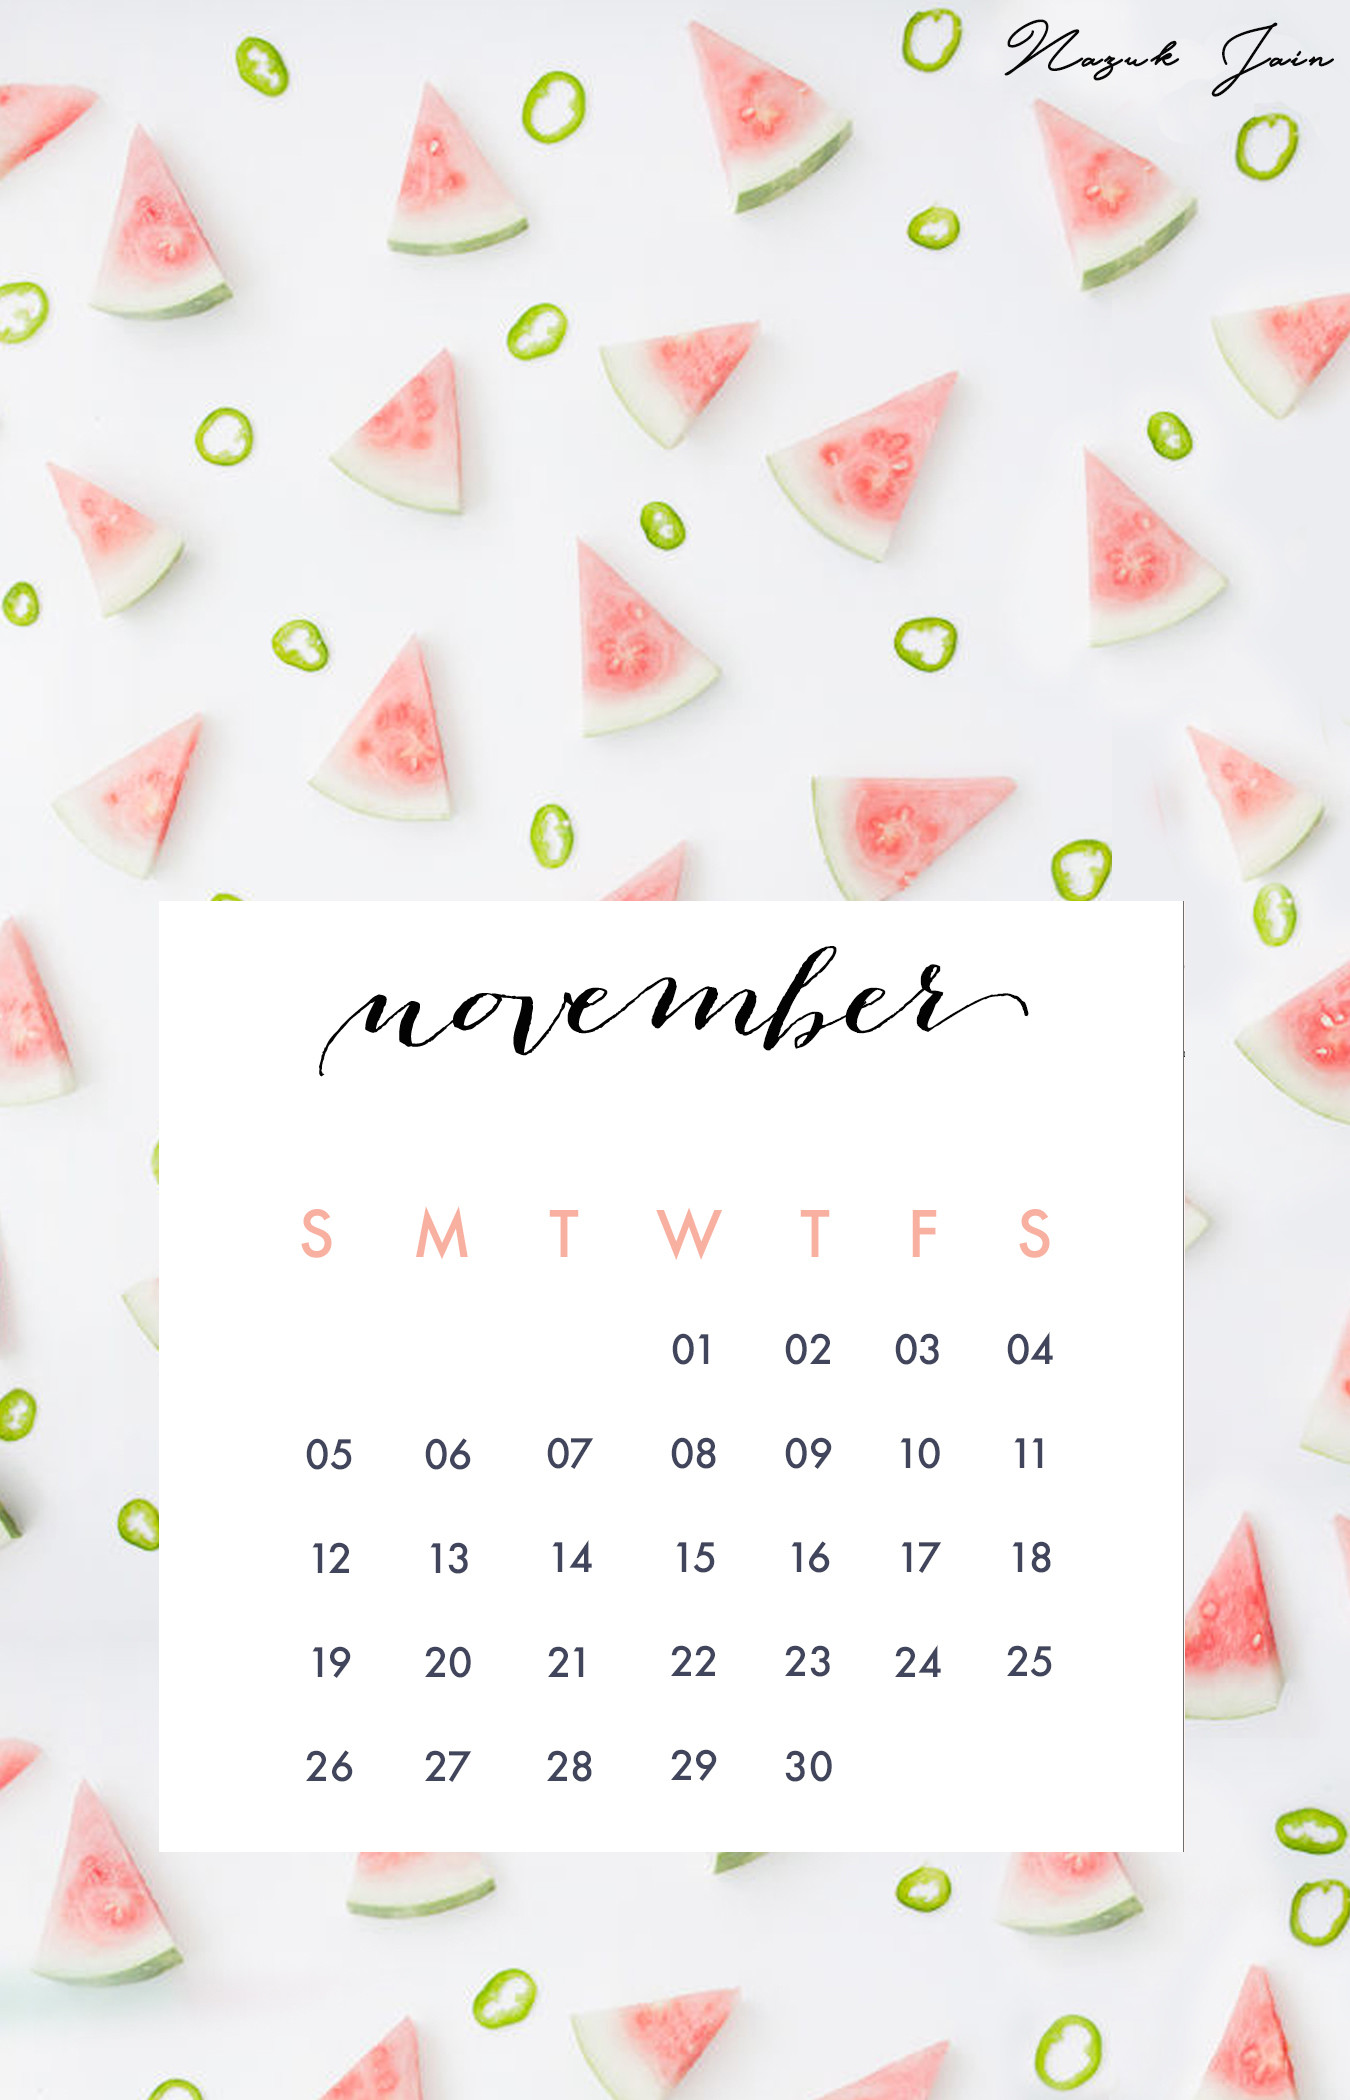 Calendar Wallpaper For Iphone : Desktop wallpapers calendar november ·①